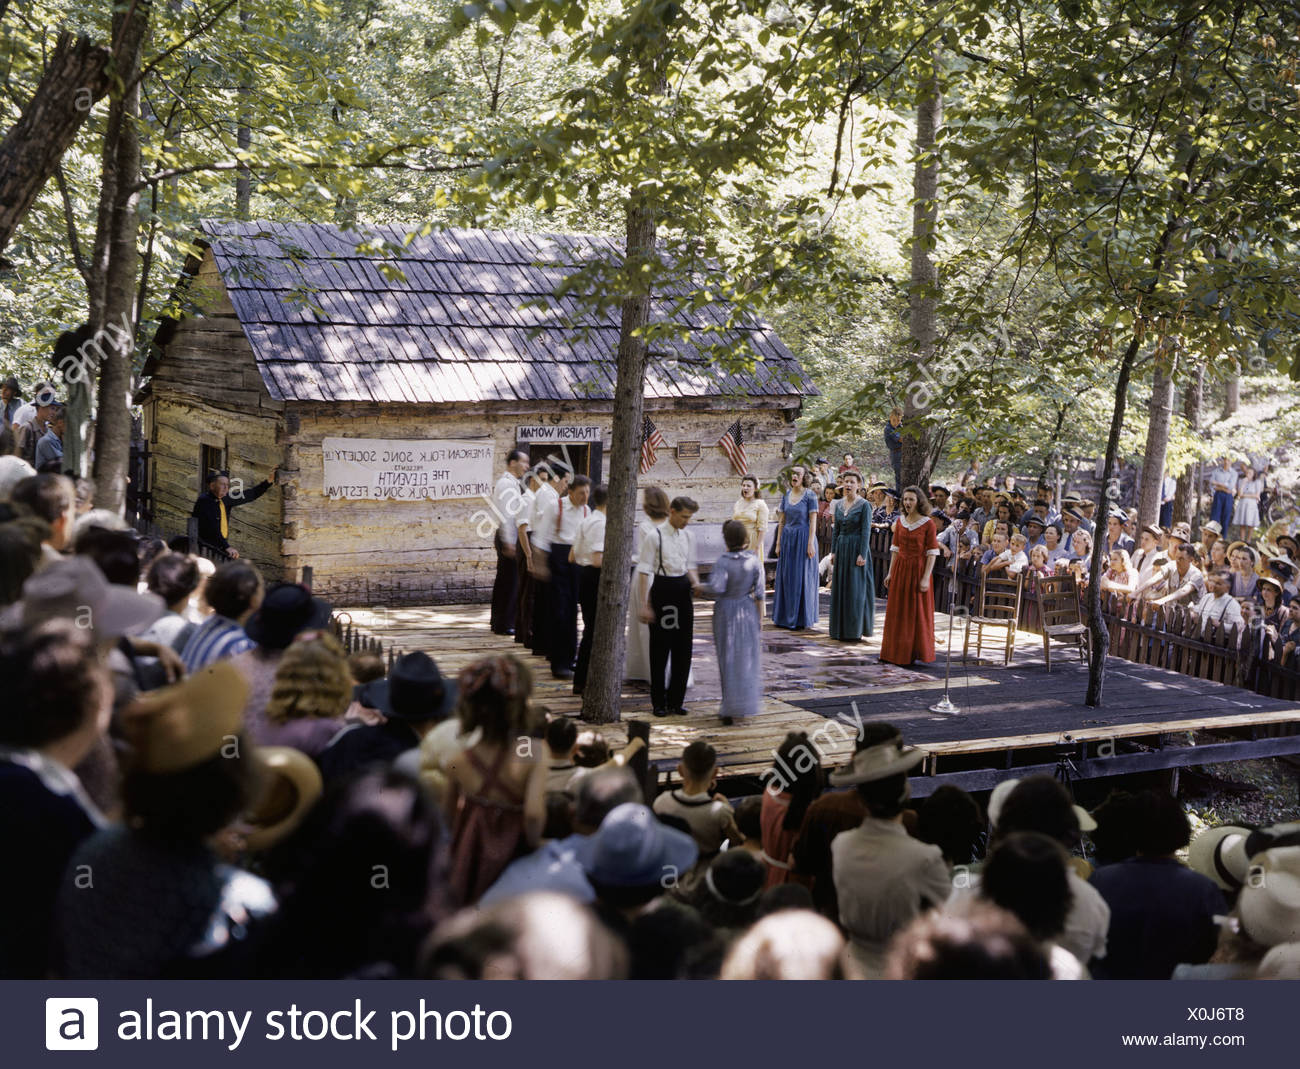 Visitors crowd around the stage for a show at a folk music festival. - Stock Image